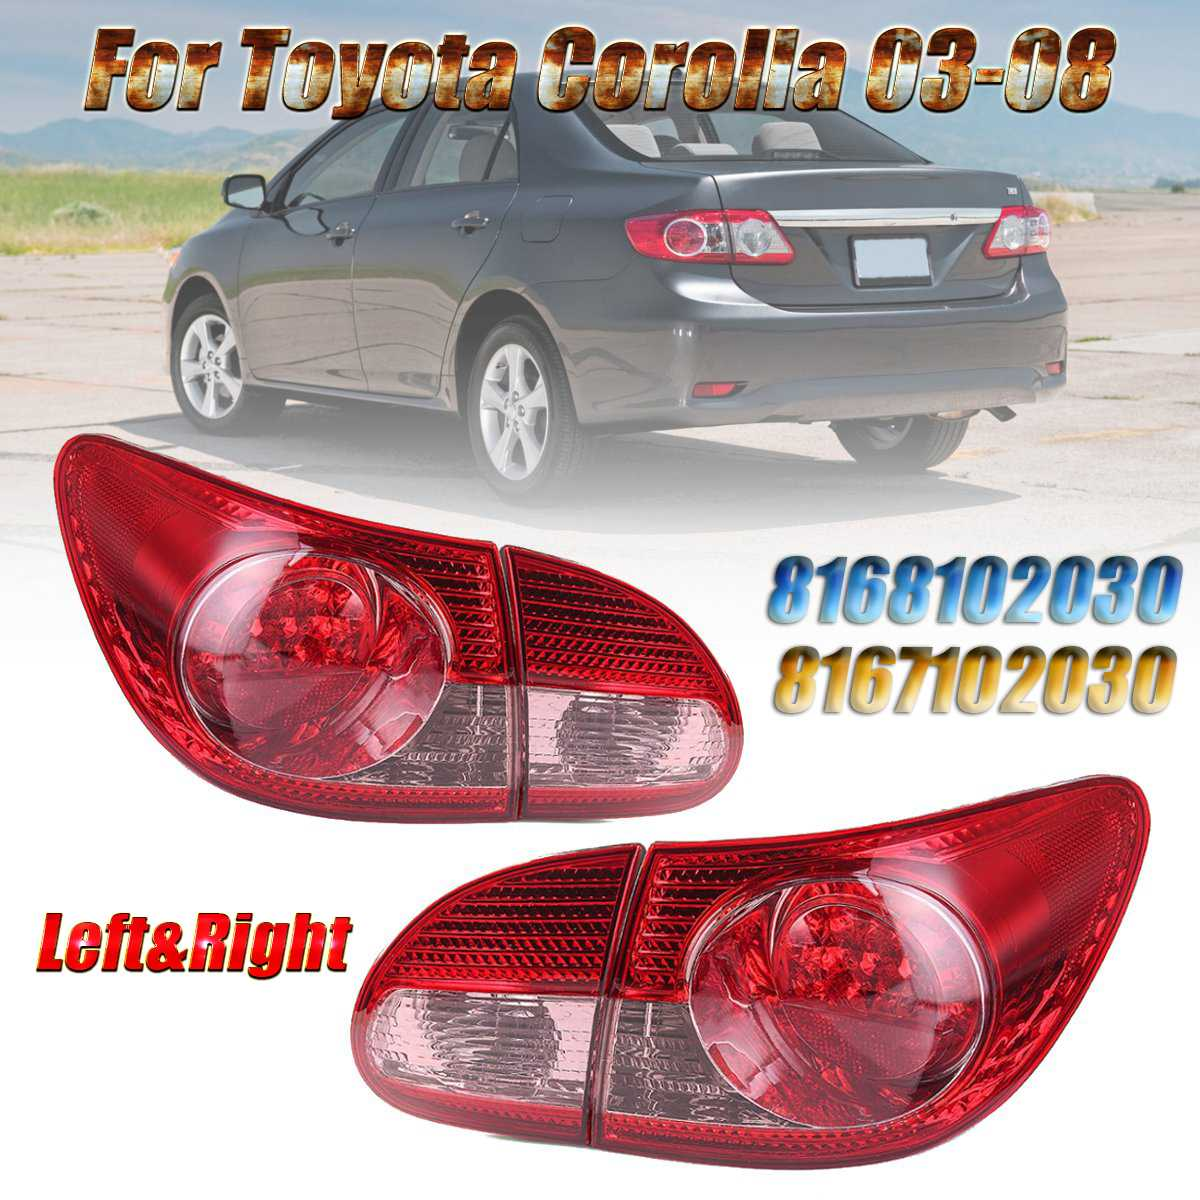 Car Rear Tail Light Brake Lamp Replacement Tail Light Lamp For Toyota Corolla 2003 2004 2005 2006 2007 2008 #TO2801144Car Rear Tail Light Brake Lamp Replacement Tail Light Lamp For Toyota Corolla 2003 2004 2005 2006 2007 2008 #TO2801144